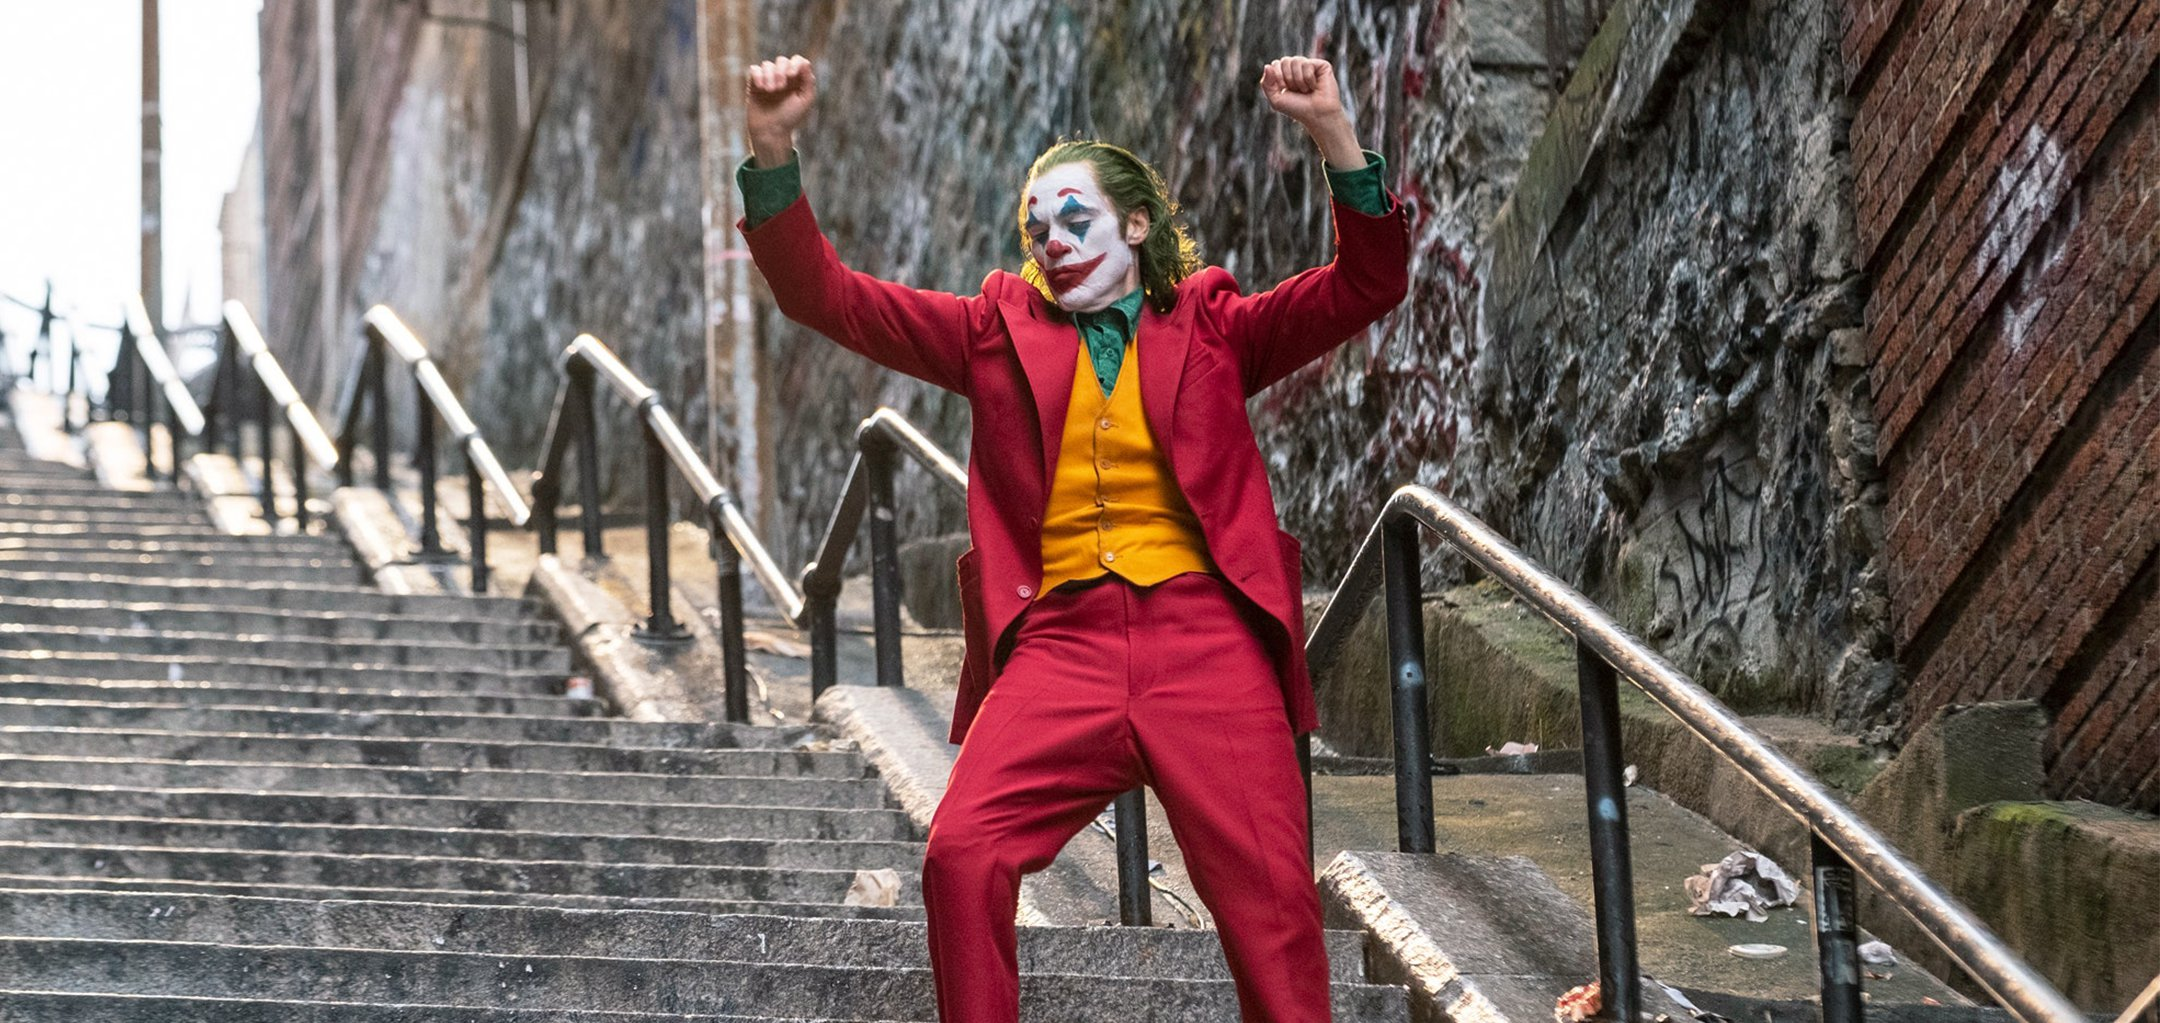 Joker (Joaquin Phoenix) dancing on the stairs